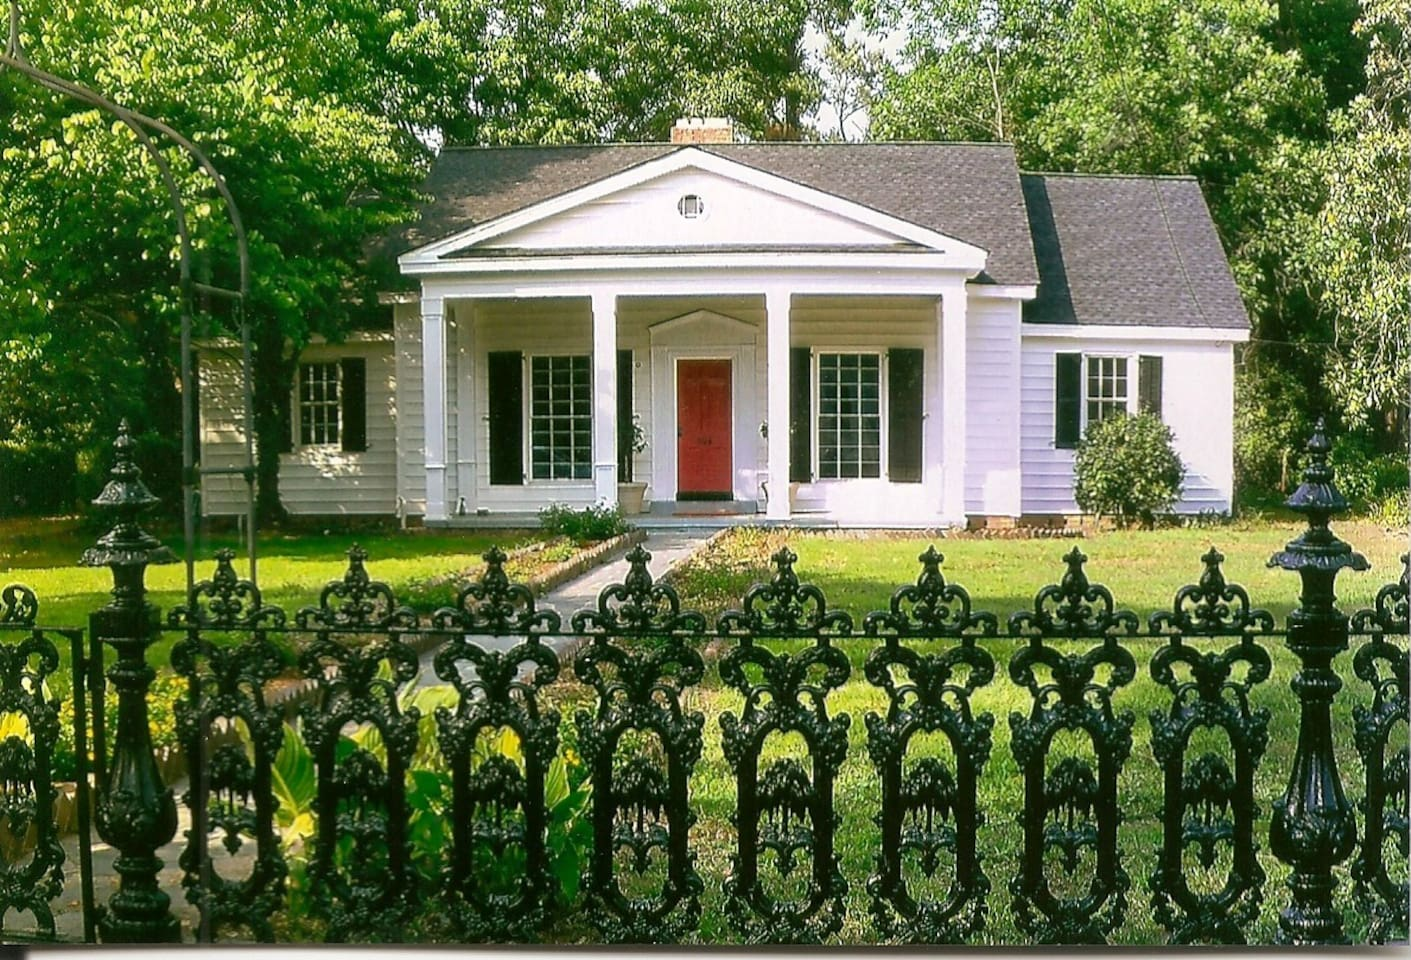 Classical Design home with Wrought Iron Fence Facade